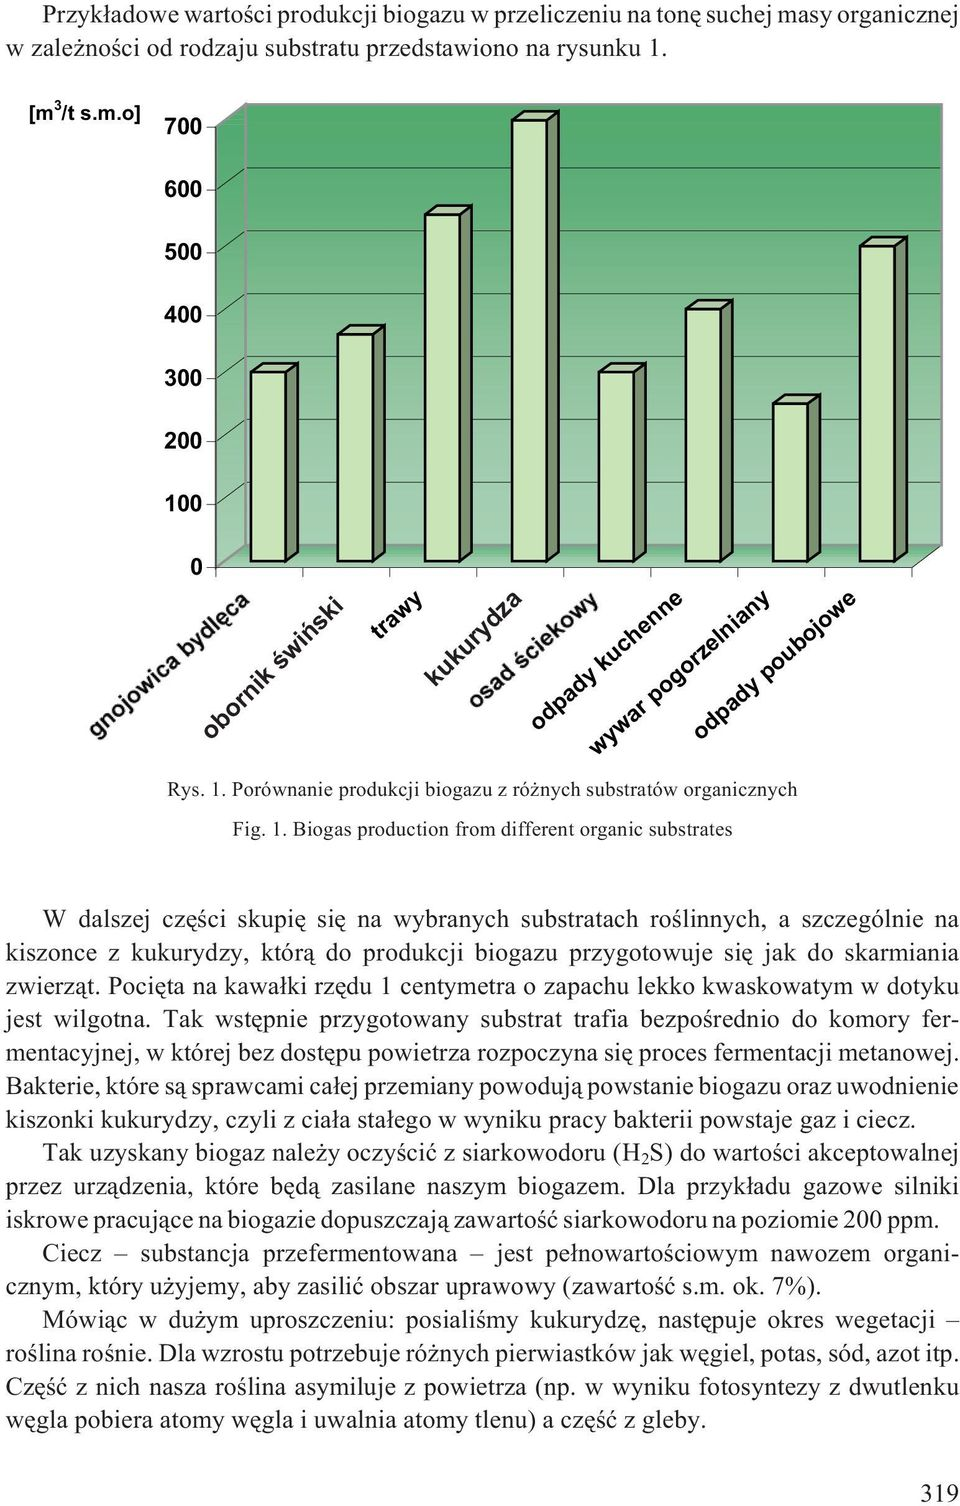 Biogas production from different organic substrates W dalszej czêœci skupiê siê na wybranych substratach roœlinnych, a szczególnie na kiszonce z kukurydzy, któr¹ do produkcji biogazu przygotowuje siê